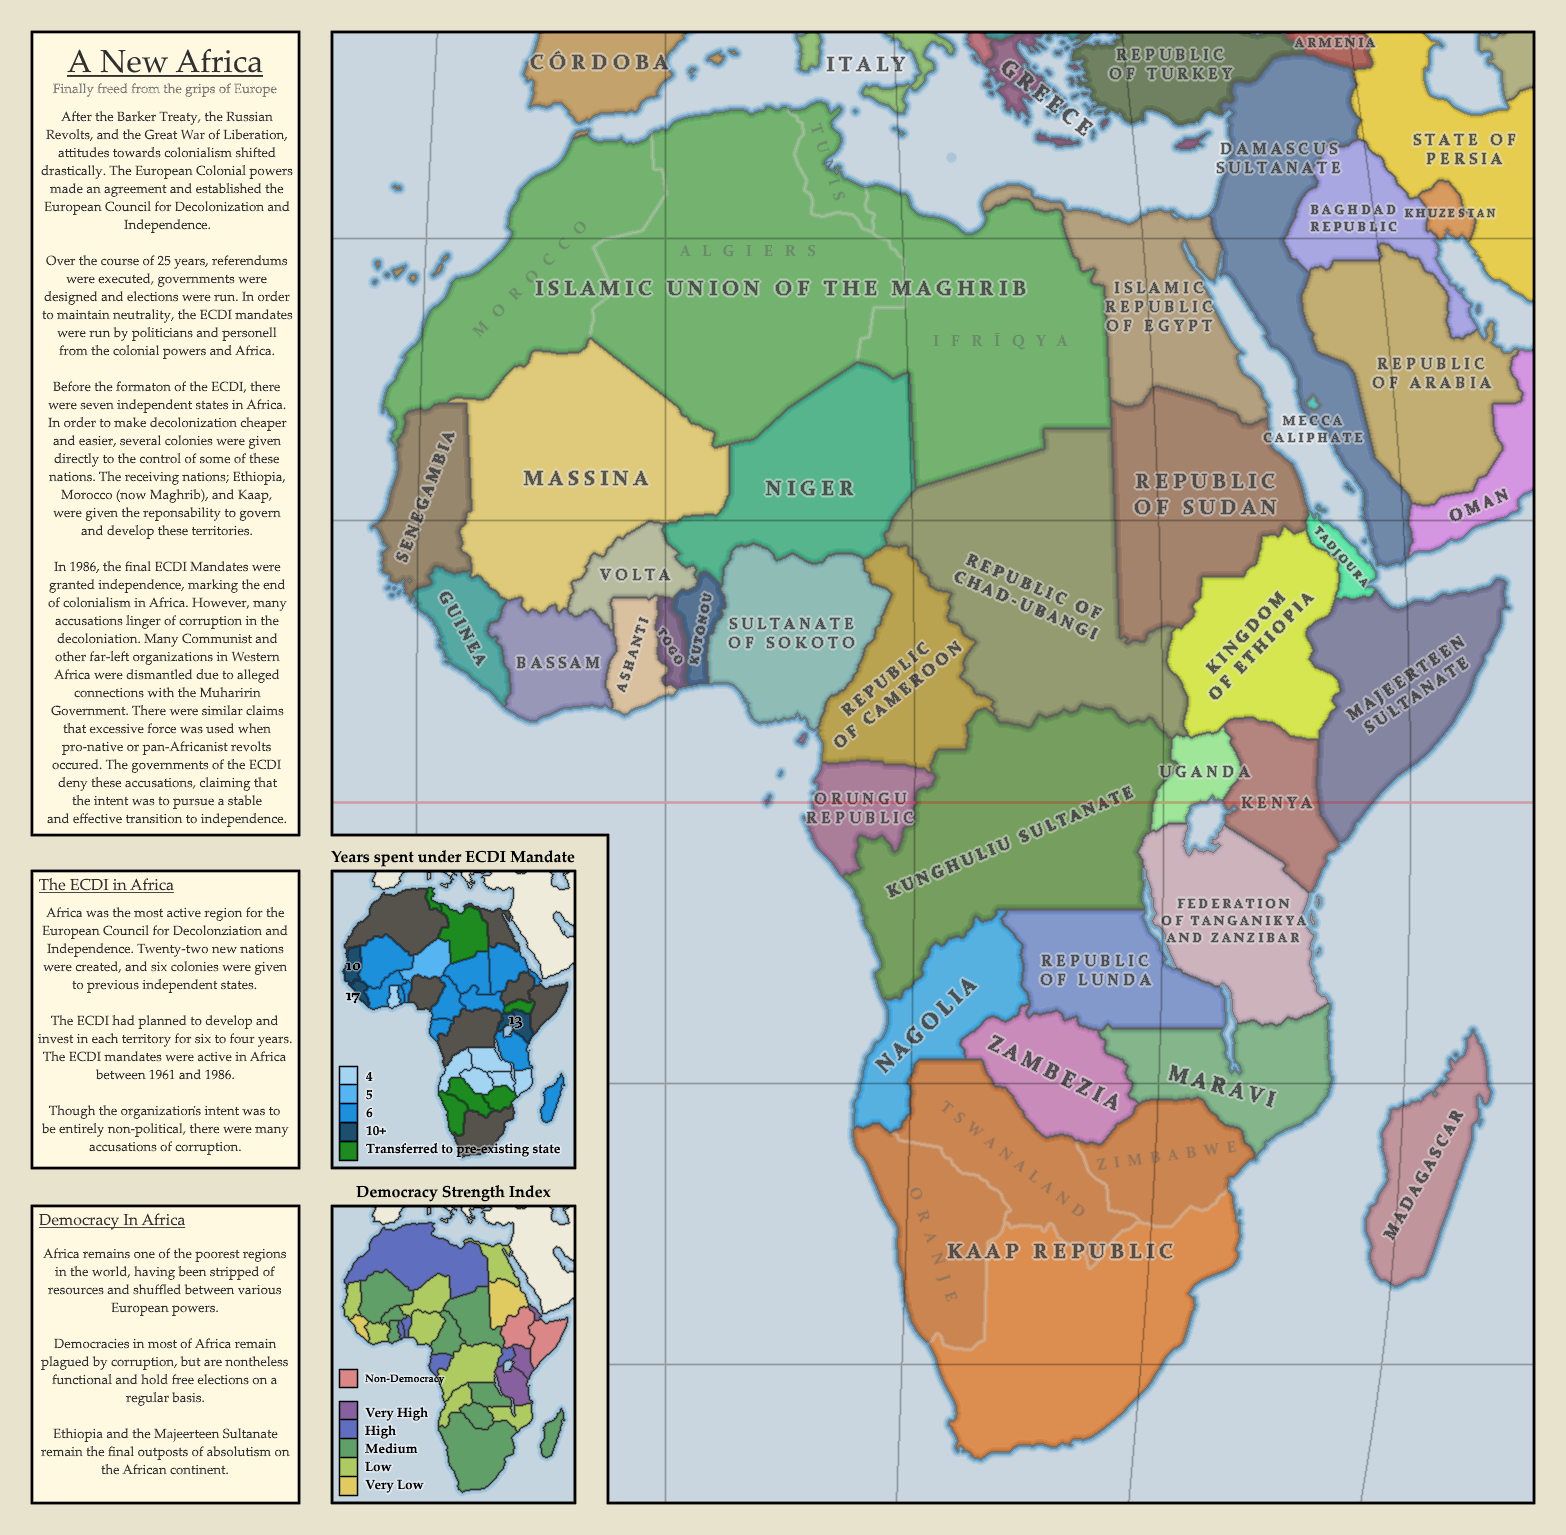 New Africa Map.A New Africa Finally Freed From The Grips Of Europe Imaginarymaps